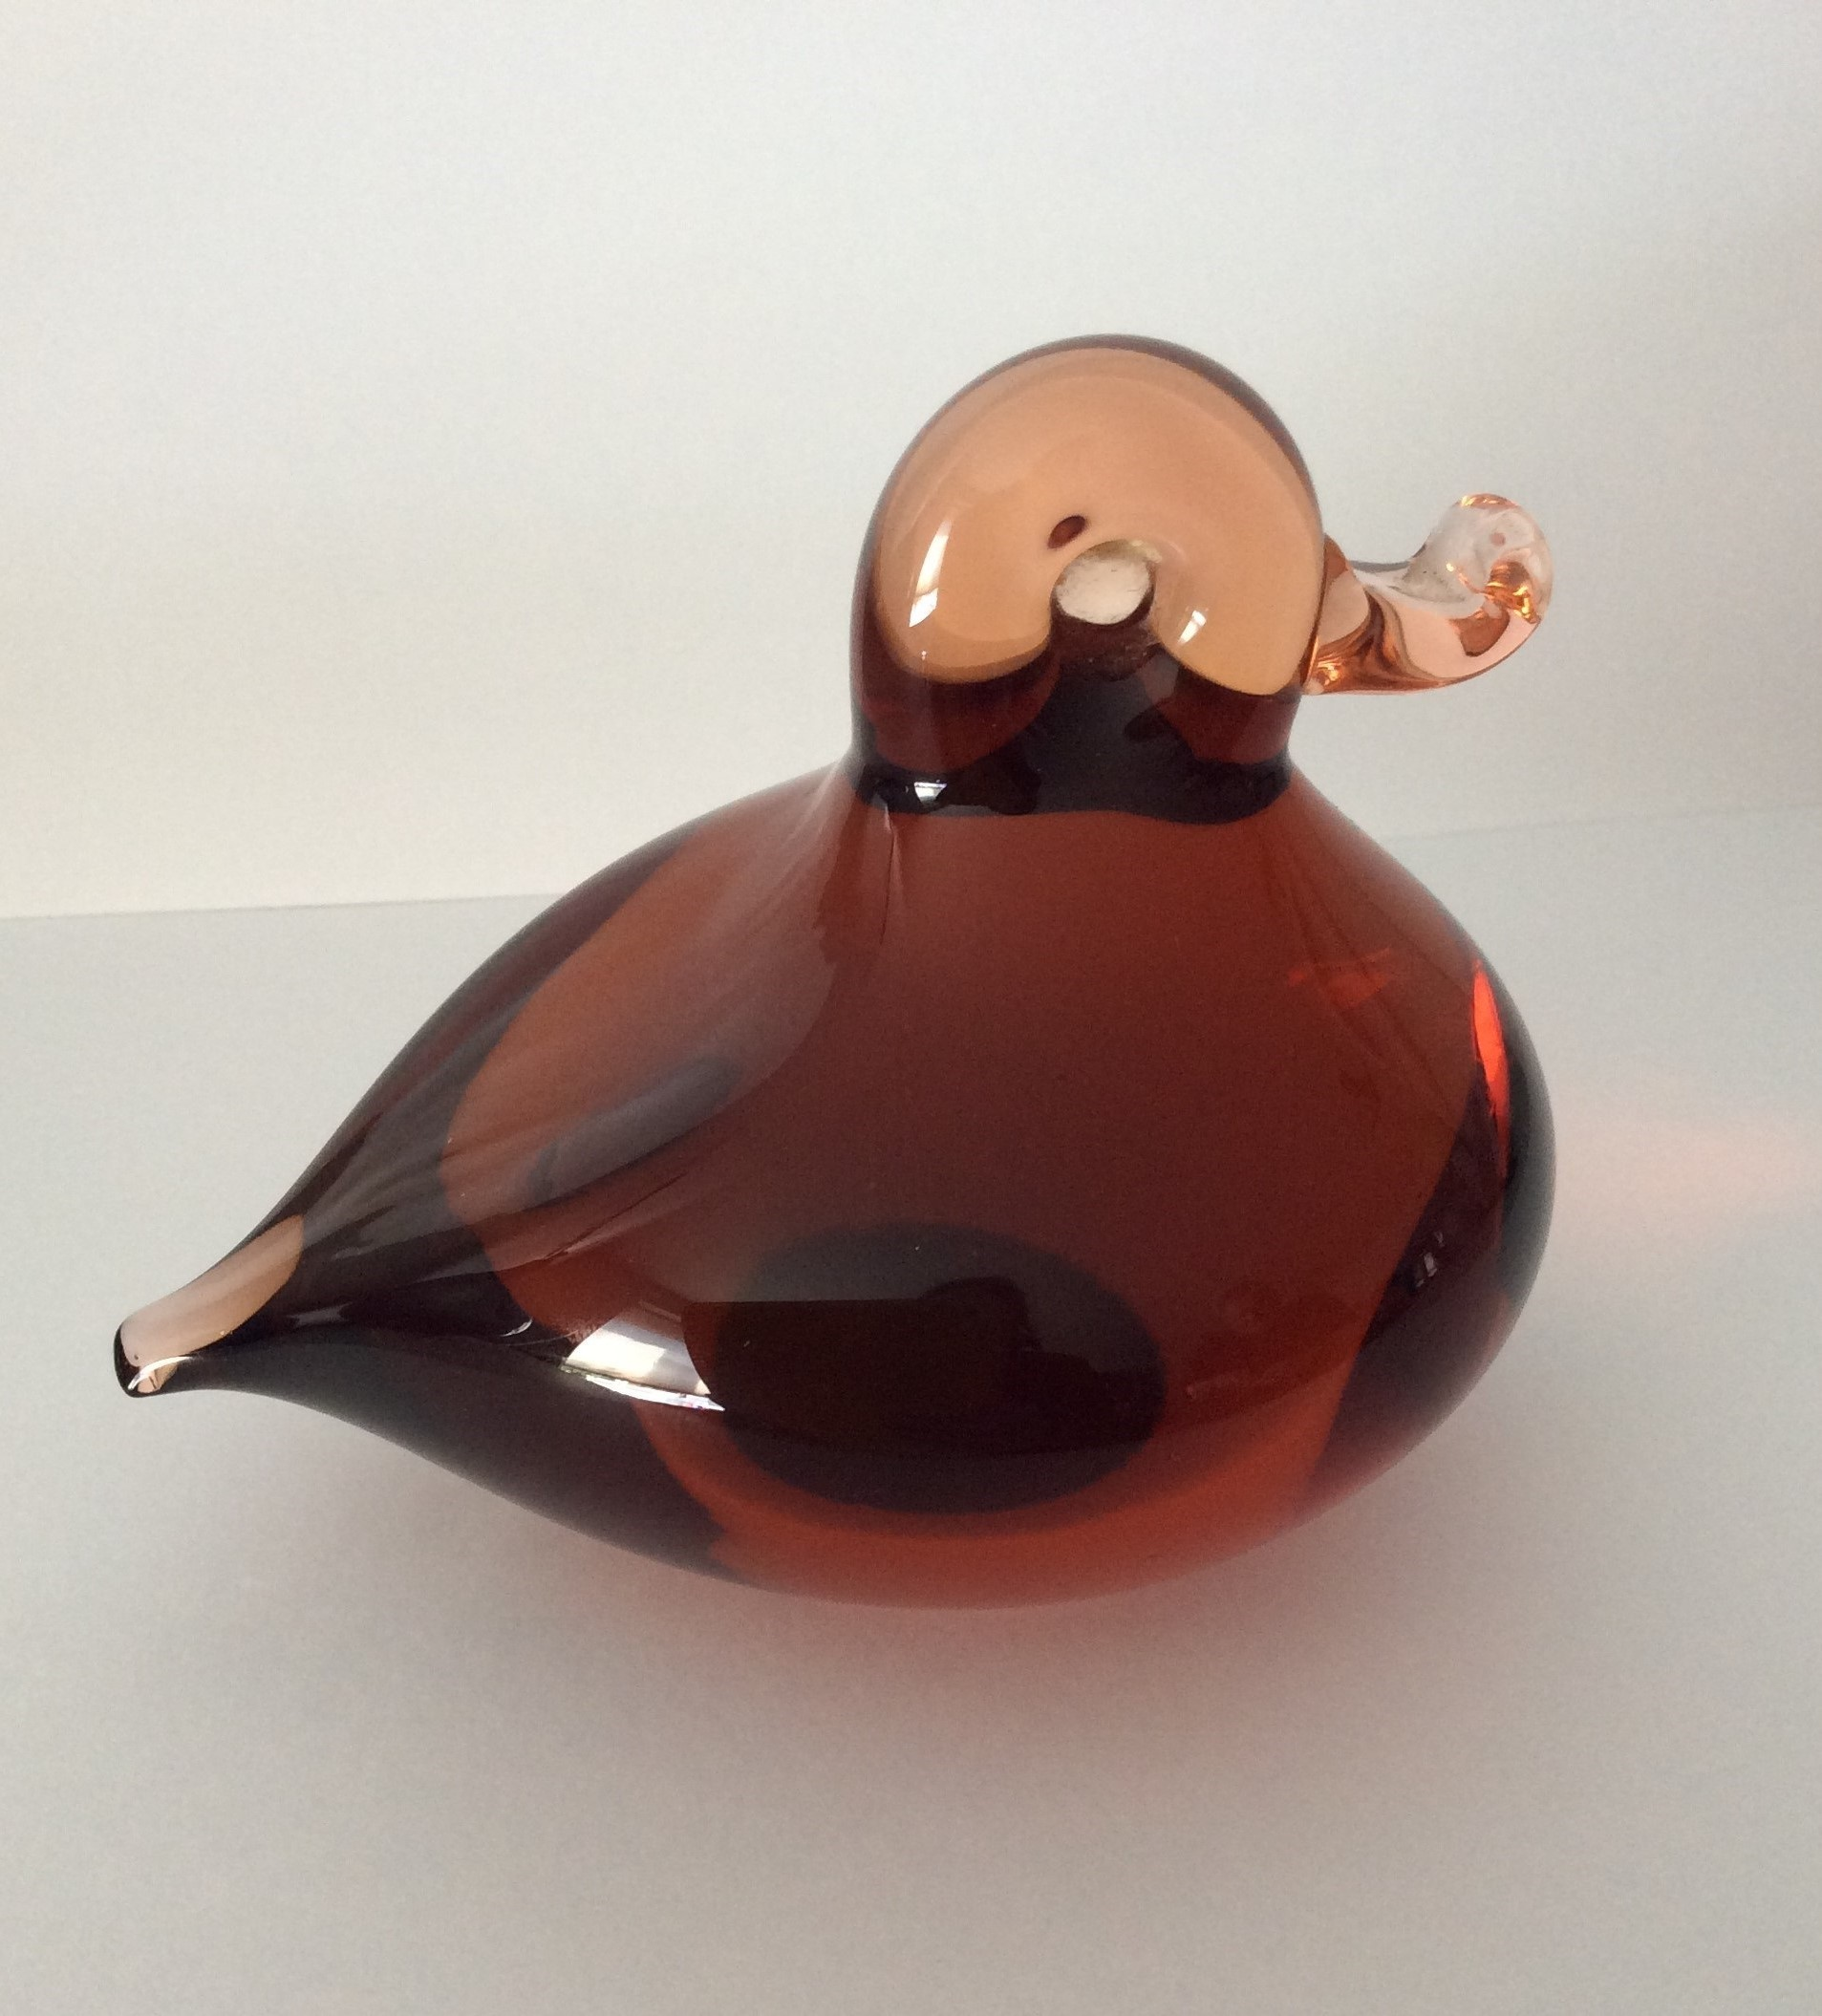 1970s vintage Wedgwood Ronald Stennett-Willson topaz glass paperweight of a duckling.